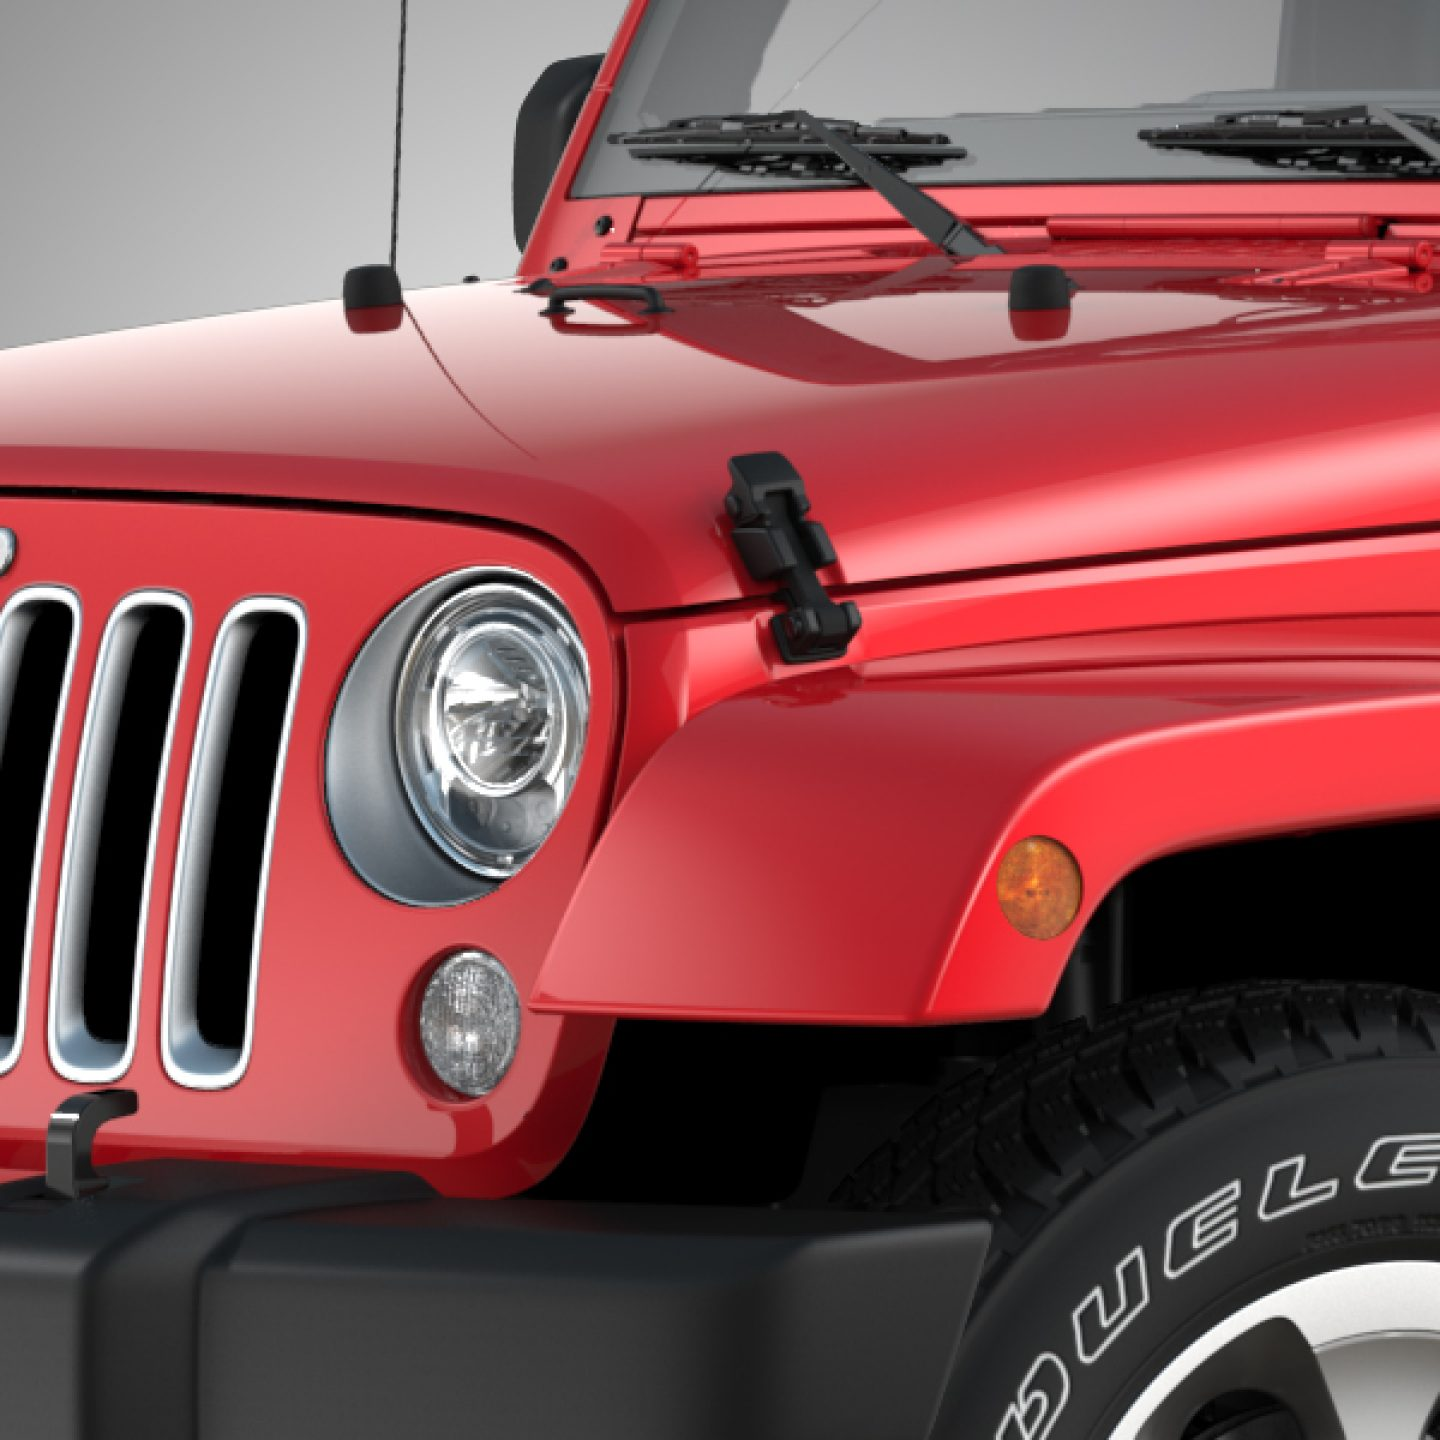 Jeep Wrangler Unlimited Lease Deals & Prices Schaumburg IL